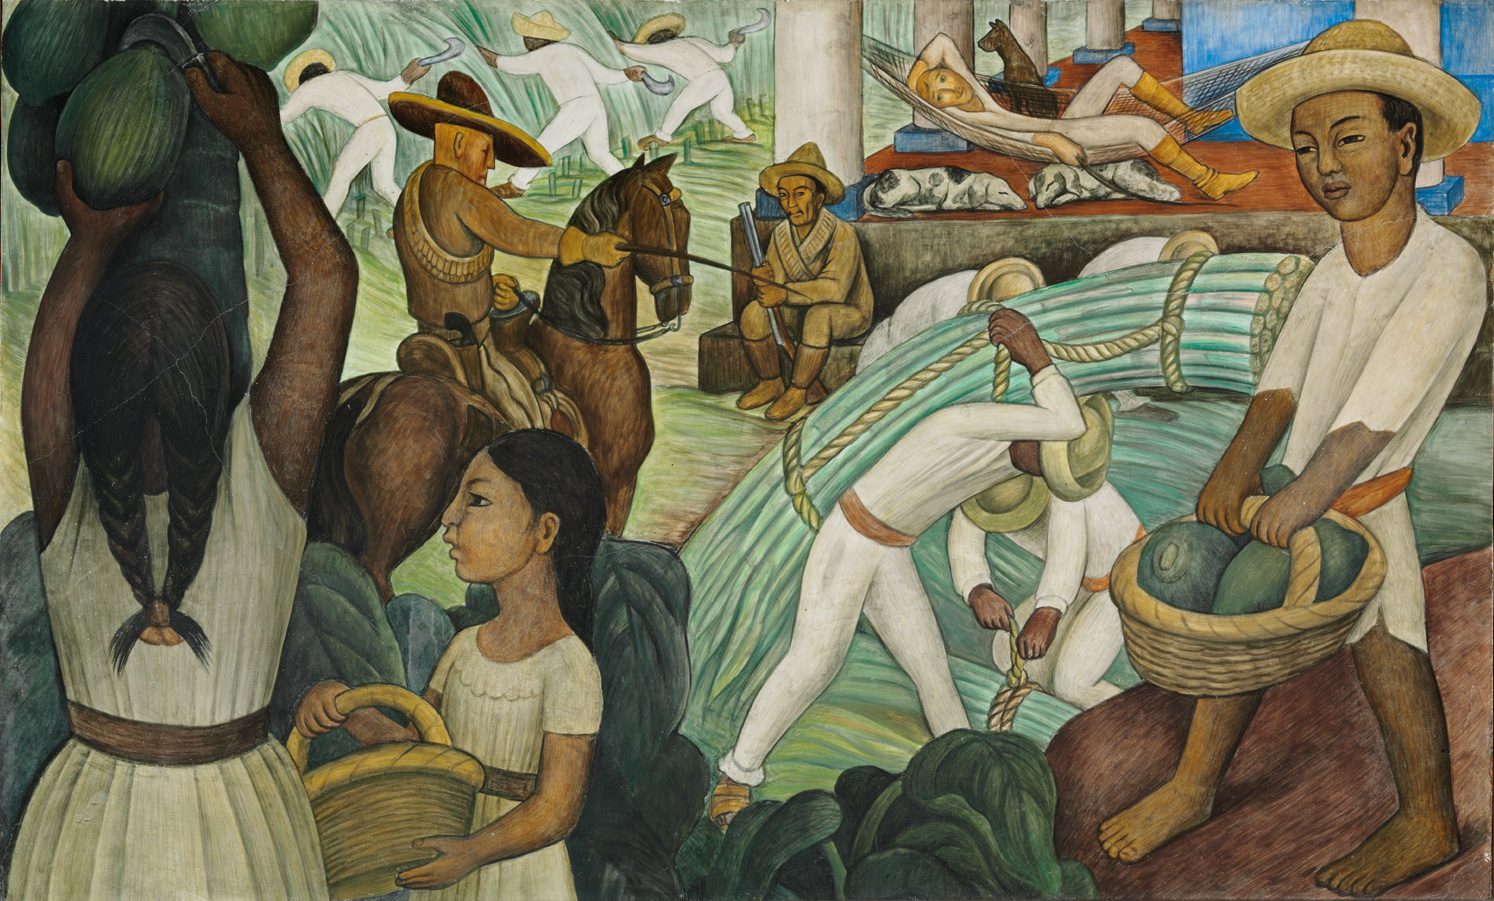 Srtawolfe kylebooth diegorivera for Diego rivera s most famous mural